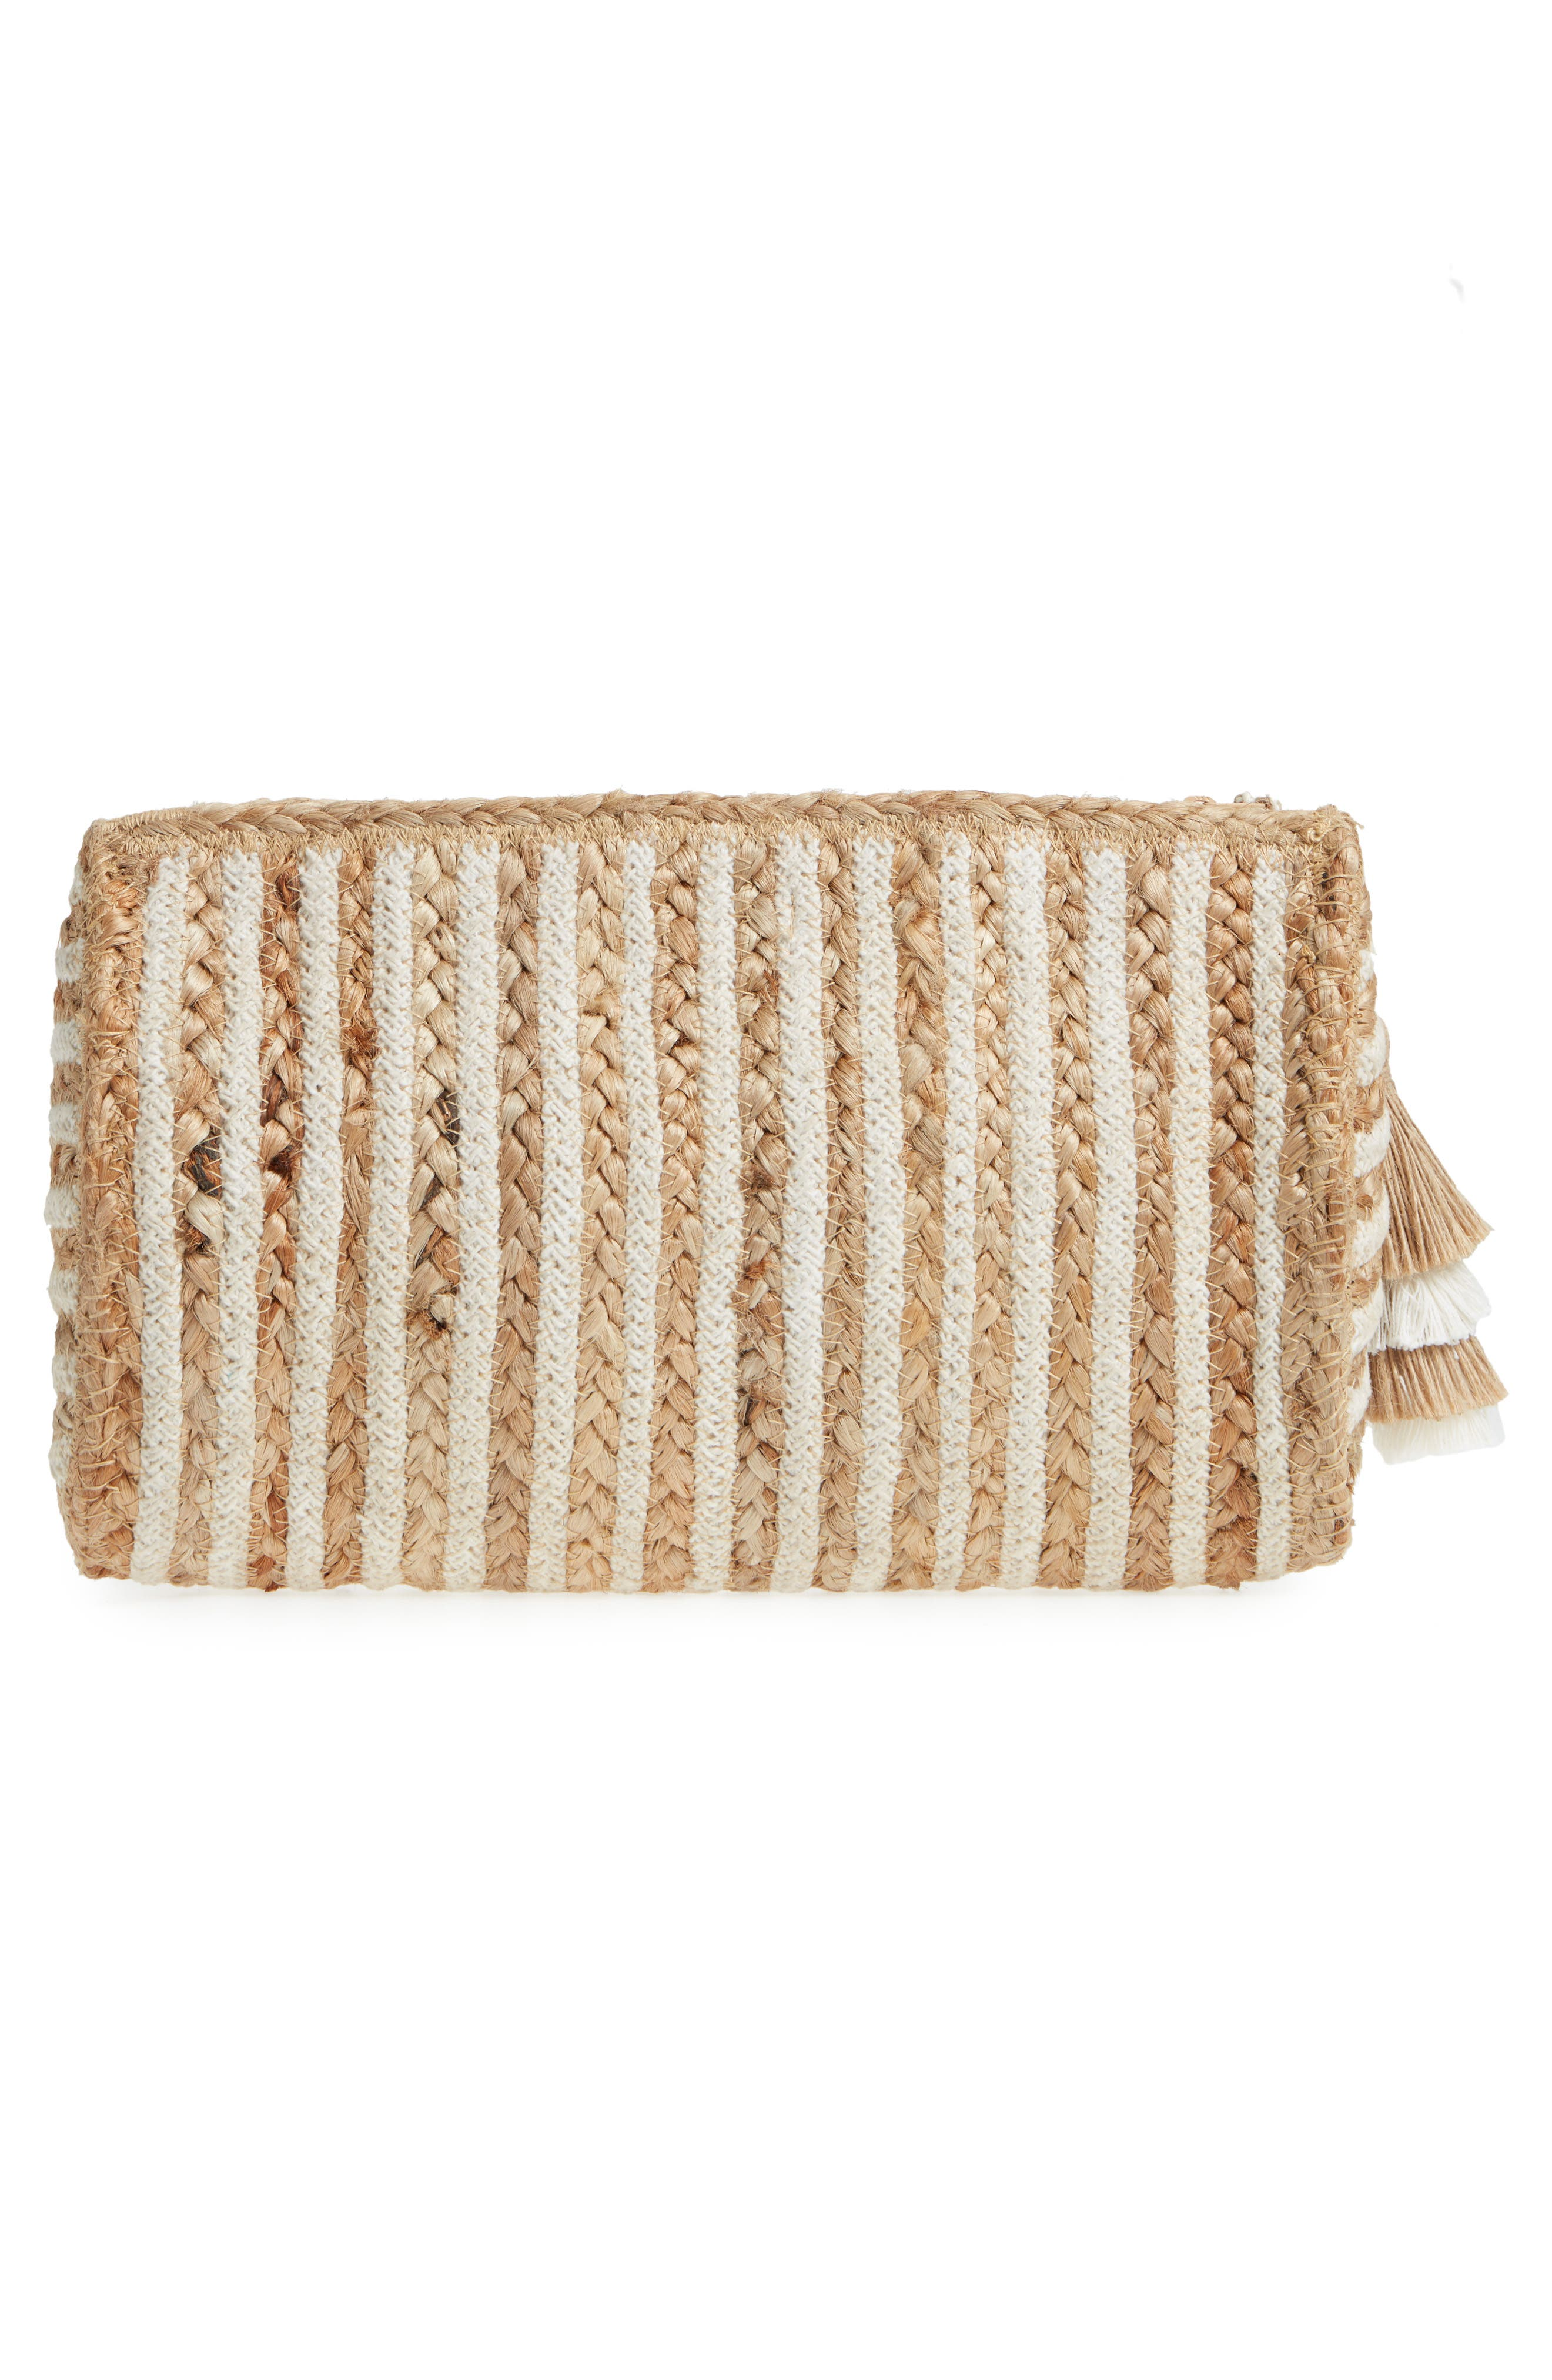 Mare Straw Clutch,                             Alternate thumbnail 3, color,